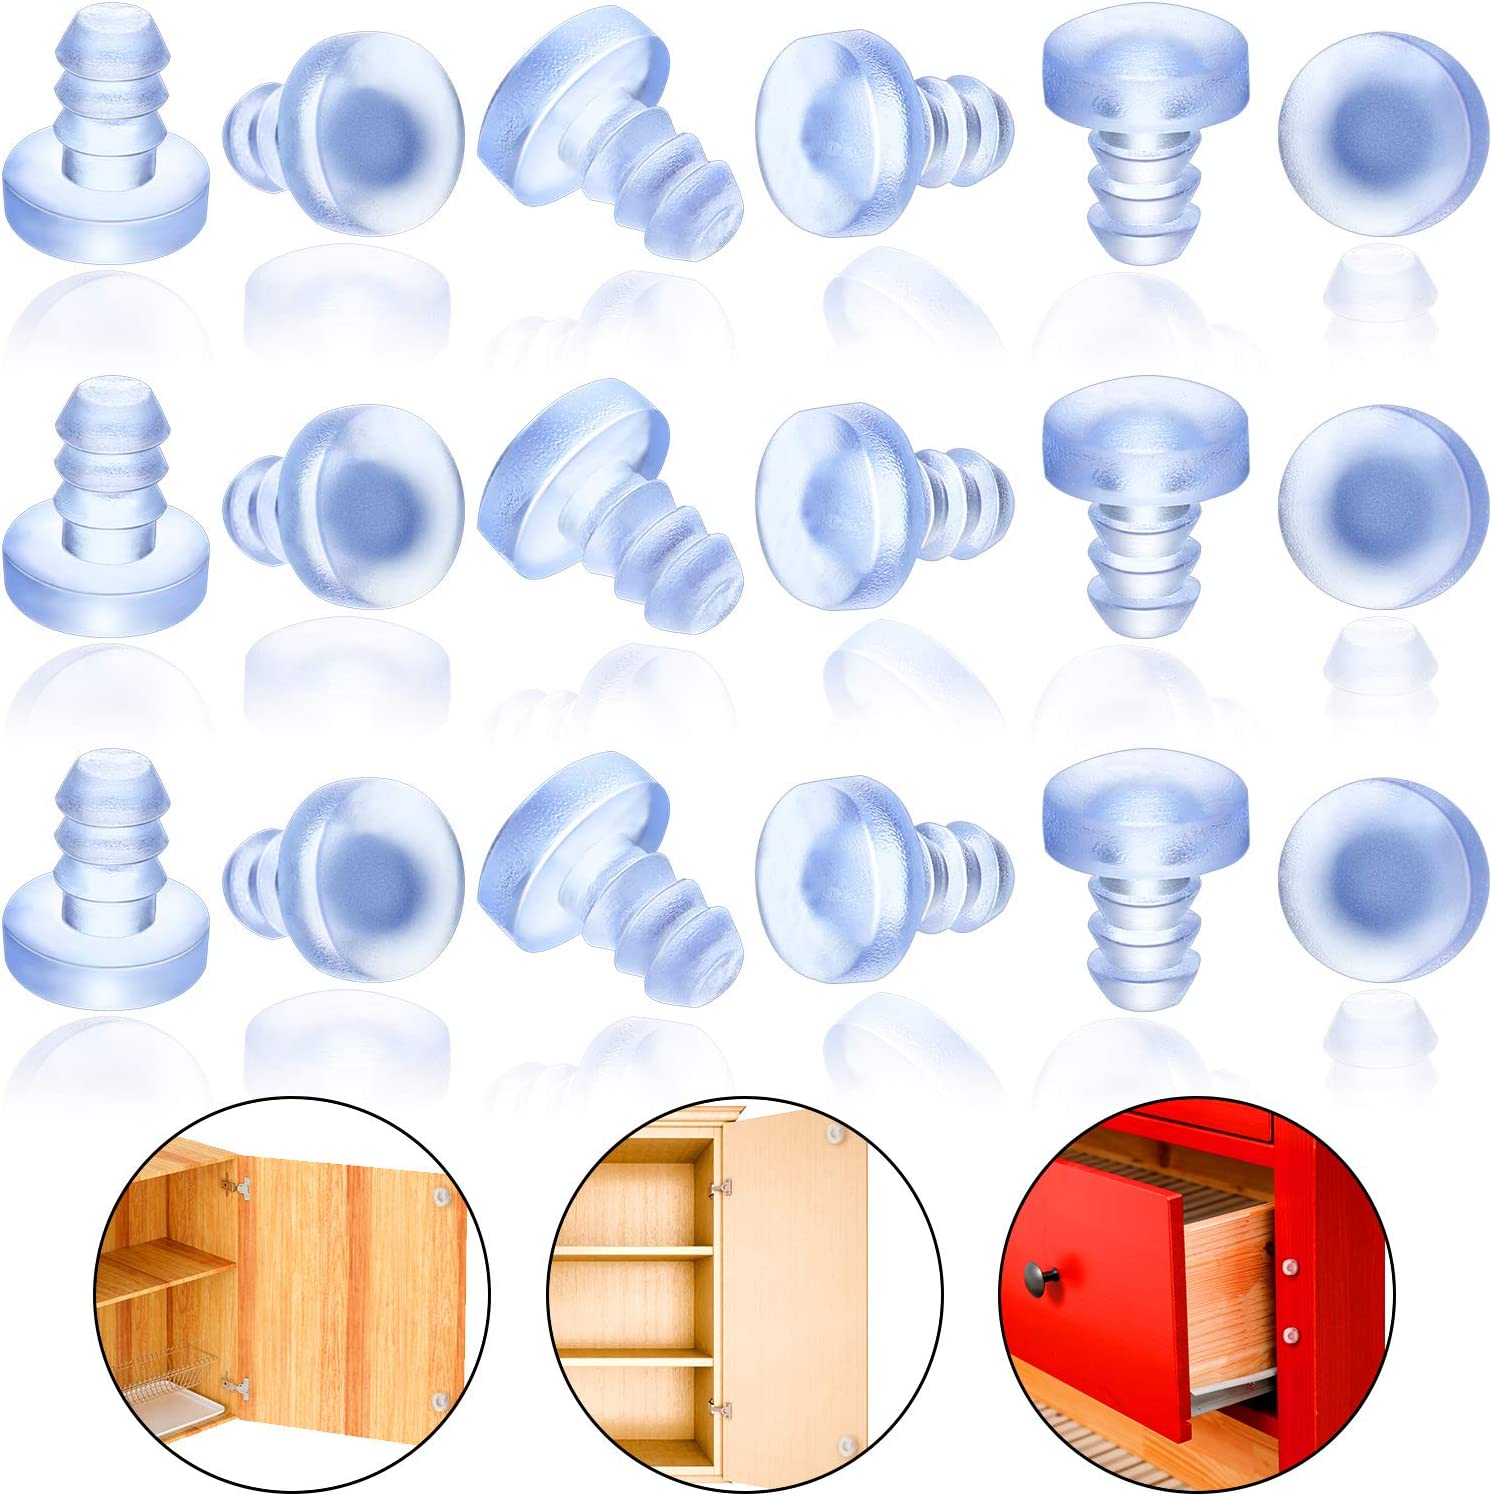 100 Pieces Glass Table Top Bumpers Soft Stem Bumper Anti Collision Embedded Rubber Bumpers Cabinet Door Bumpers for Patio Table Glass Table Top, Fits 3/16 Inch Holes